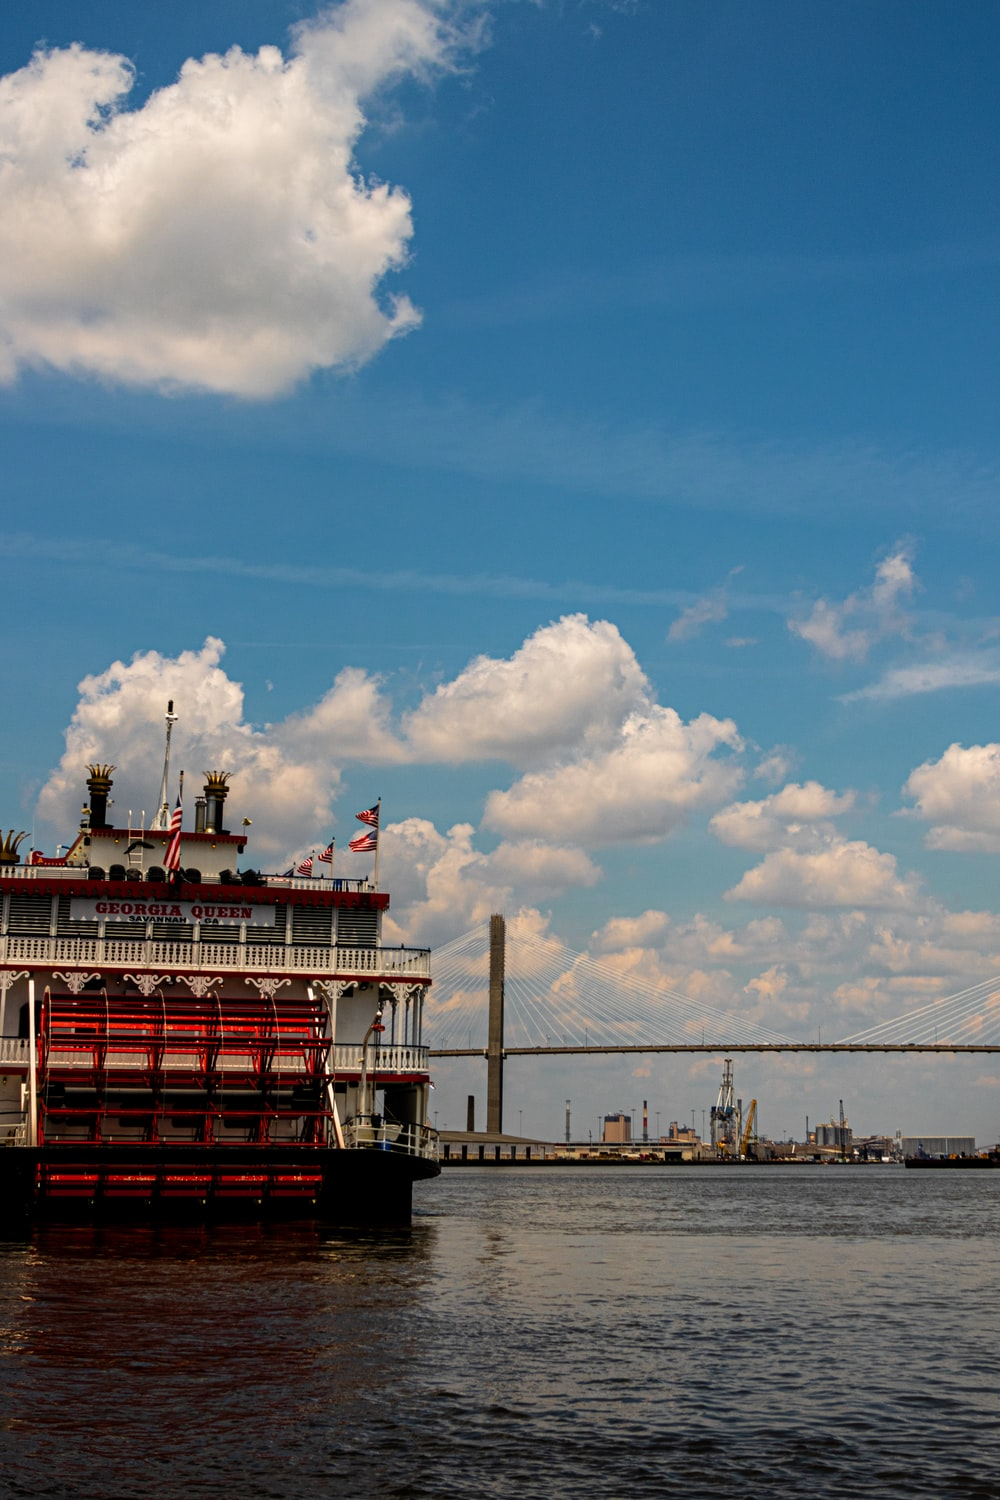 red and white ship on sea under blue sky and white clouds during daytime